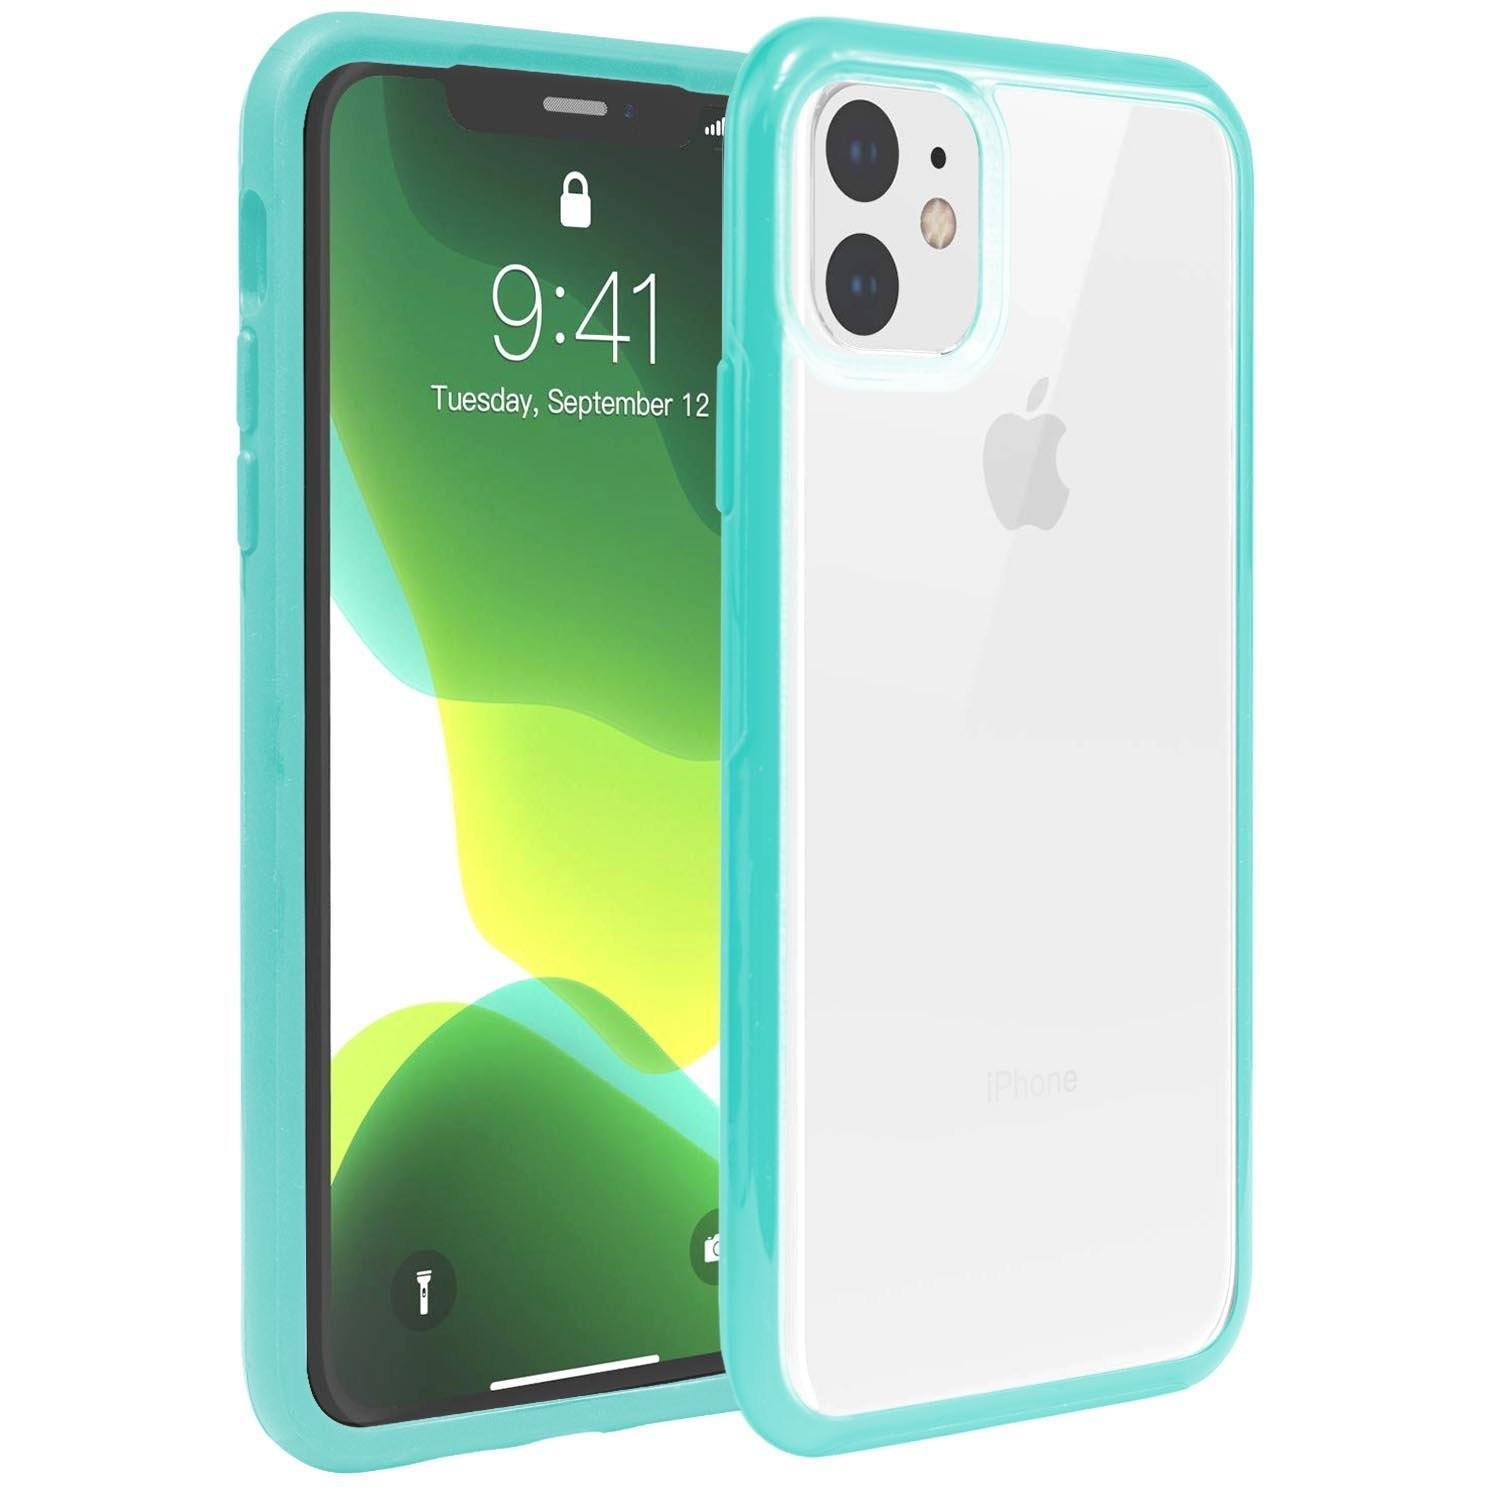 Hard Shell Transparent Back Case for iPhone 11 Pro - Teal Edge